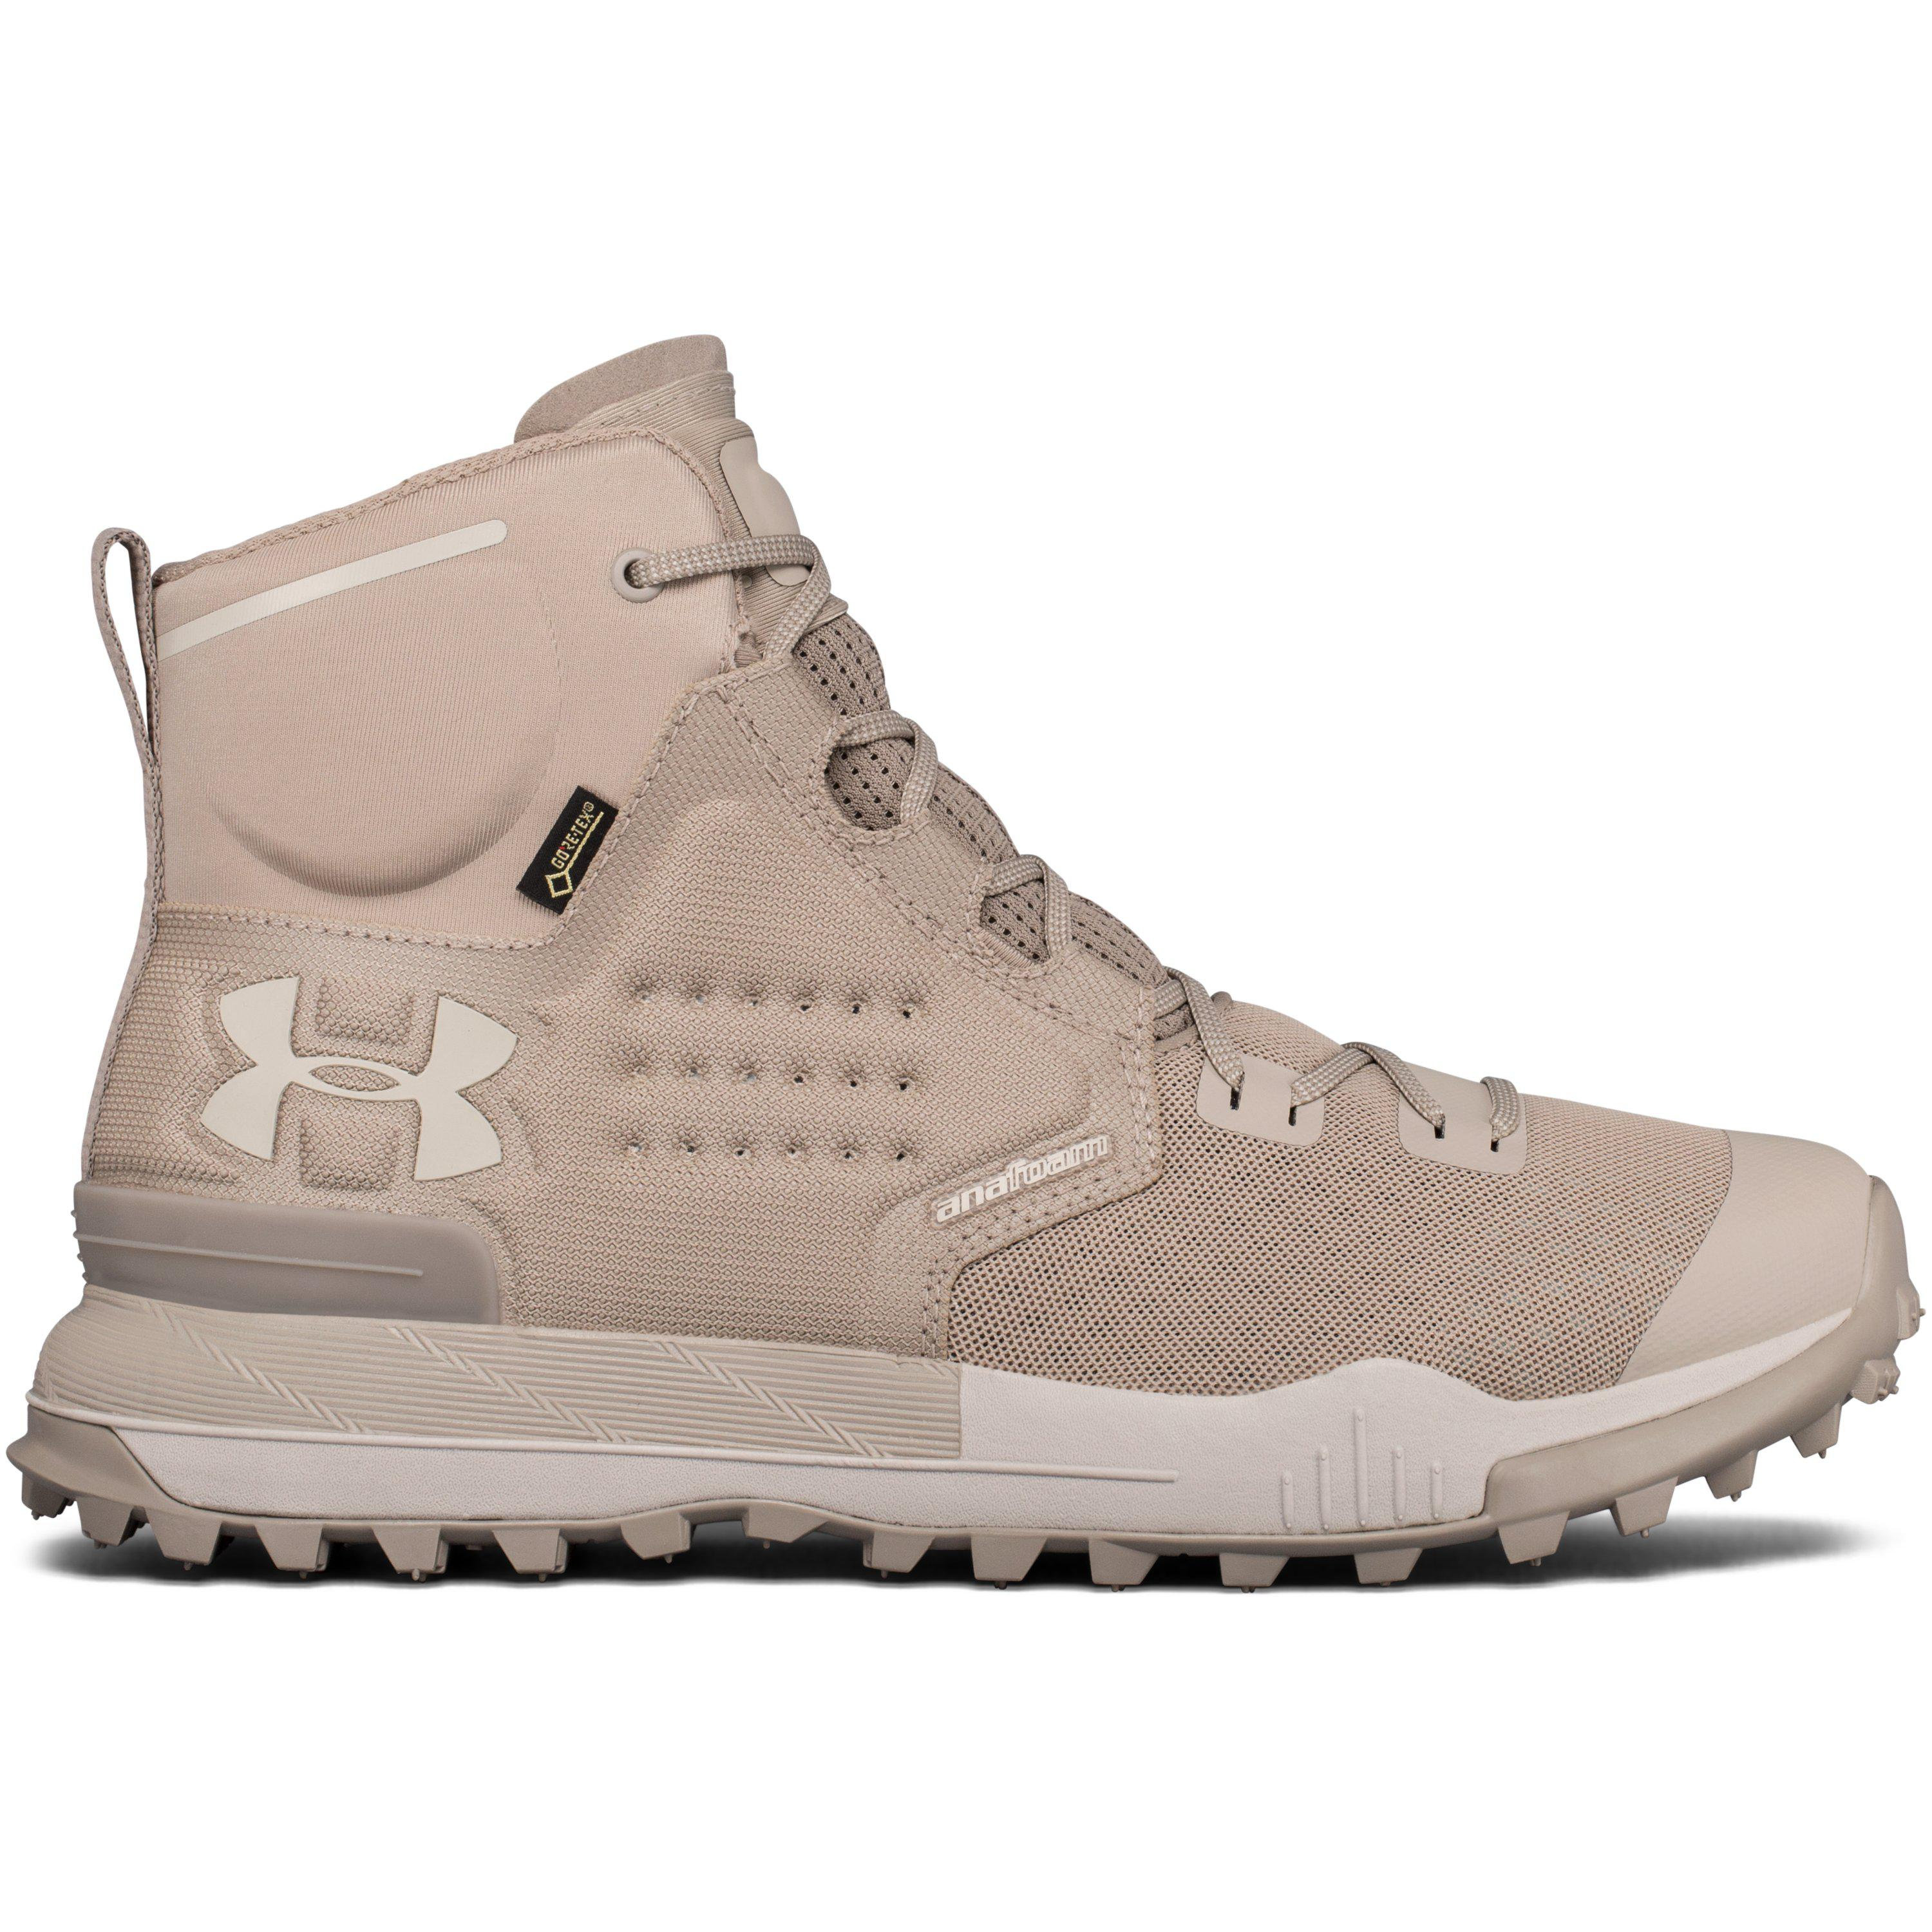 under armour hiking boots. under armour hiking boots